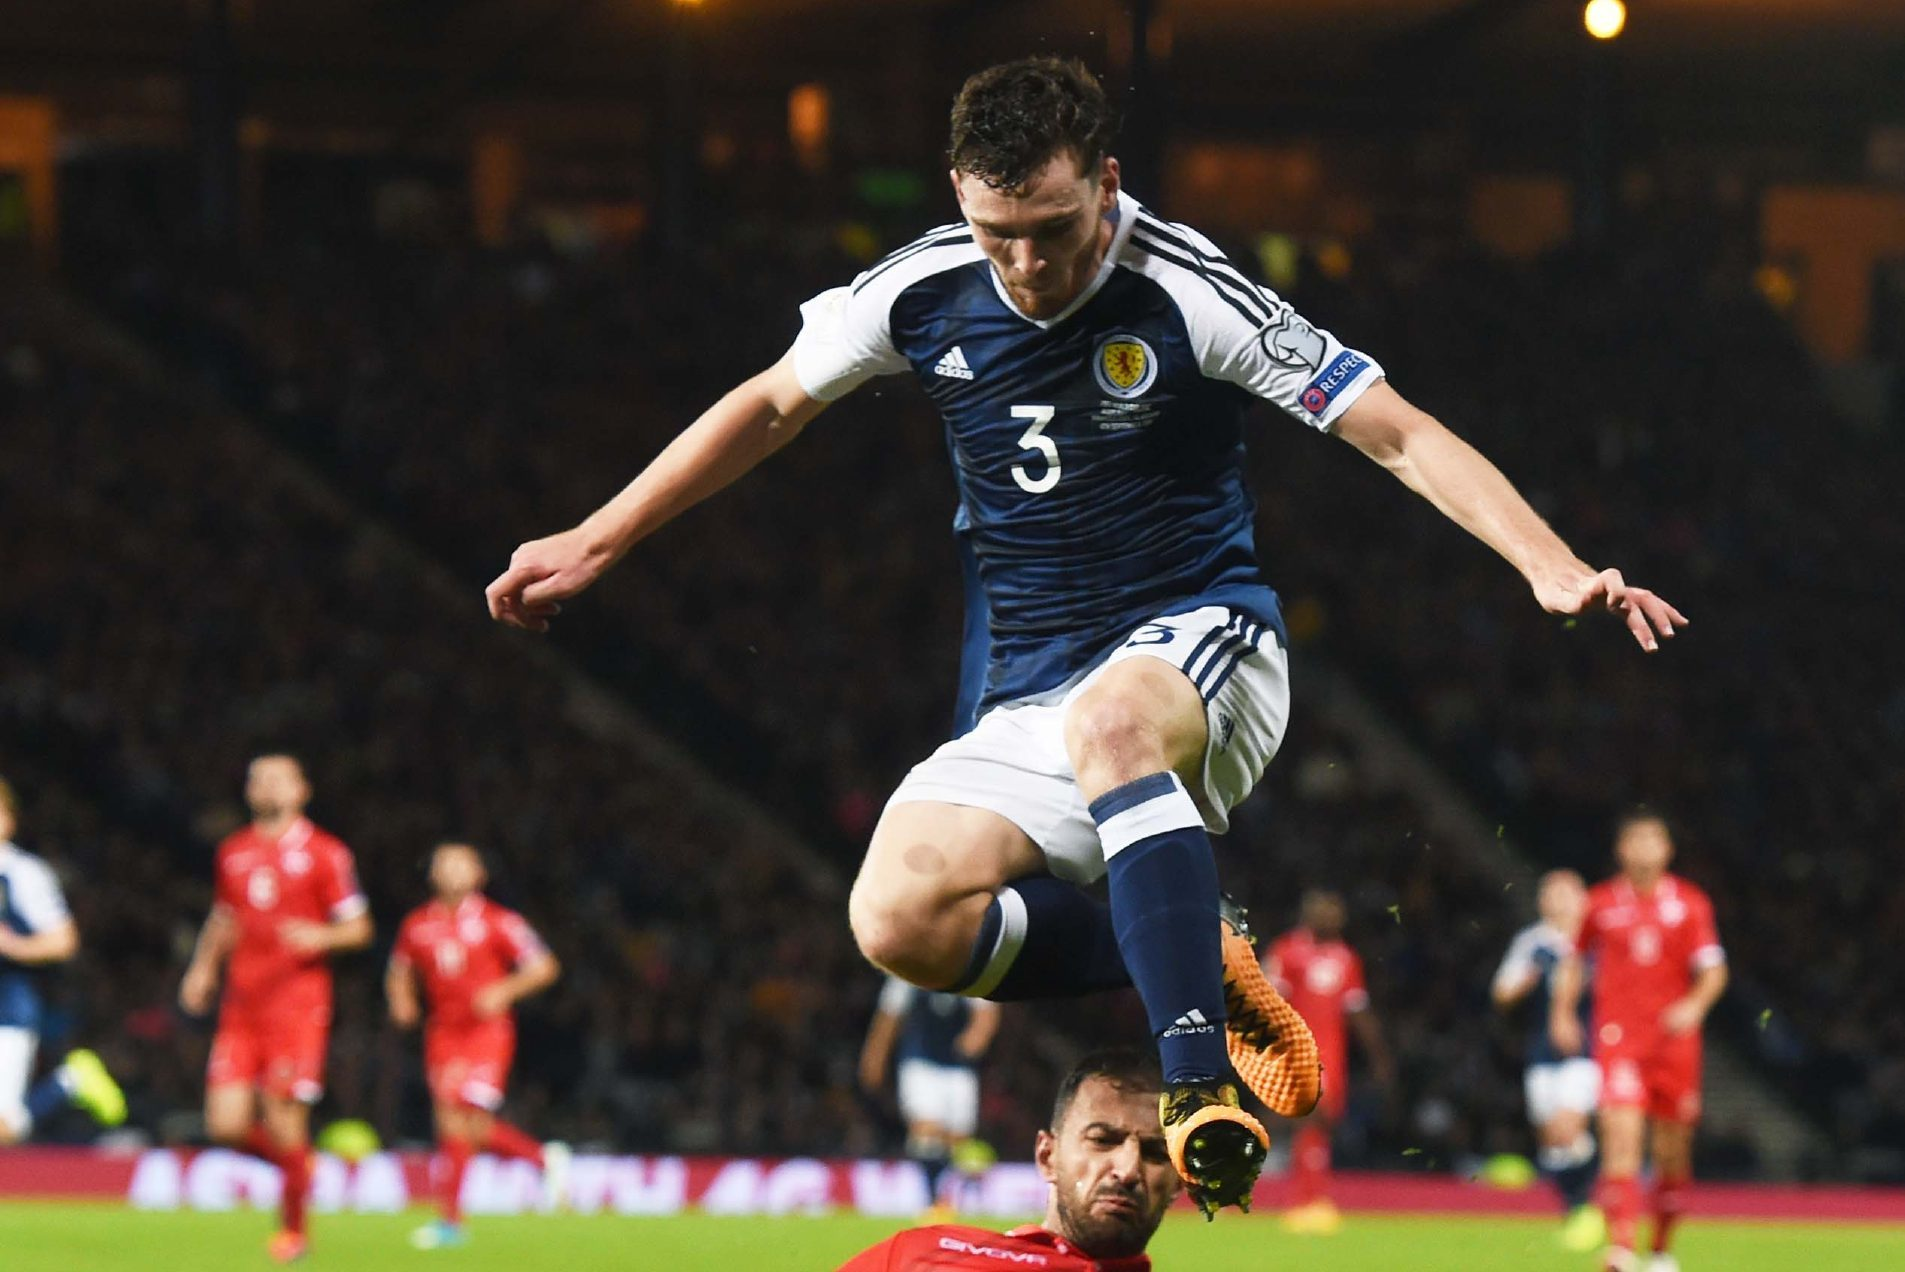 Scotland's Andrew Robertson jumps over a challenge by Malta's Steve Borg.